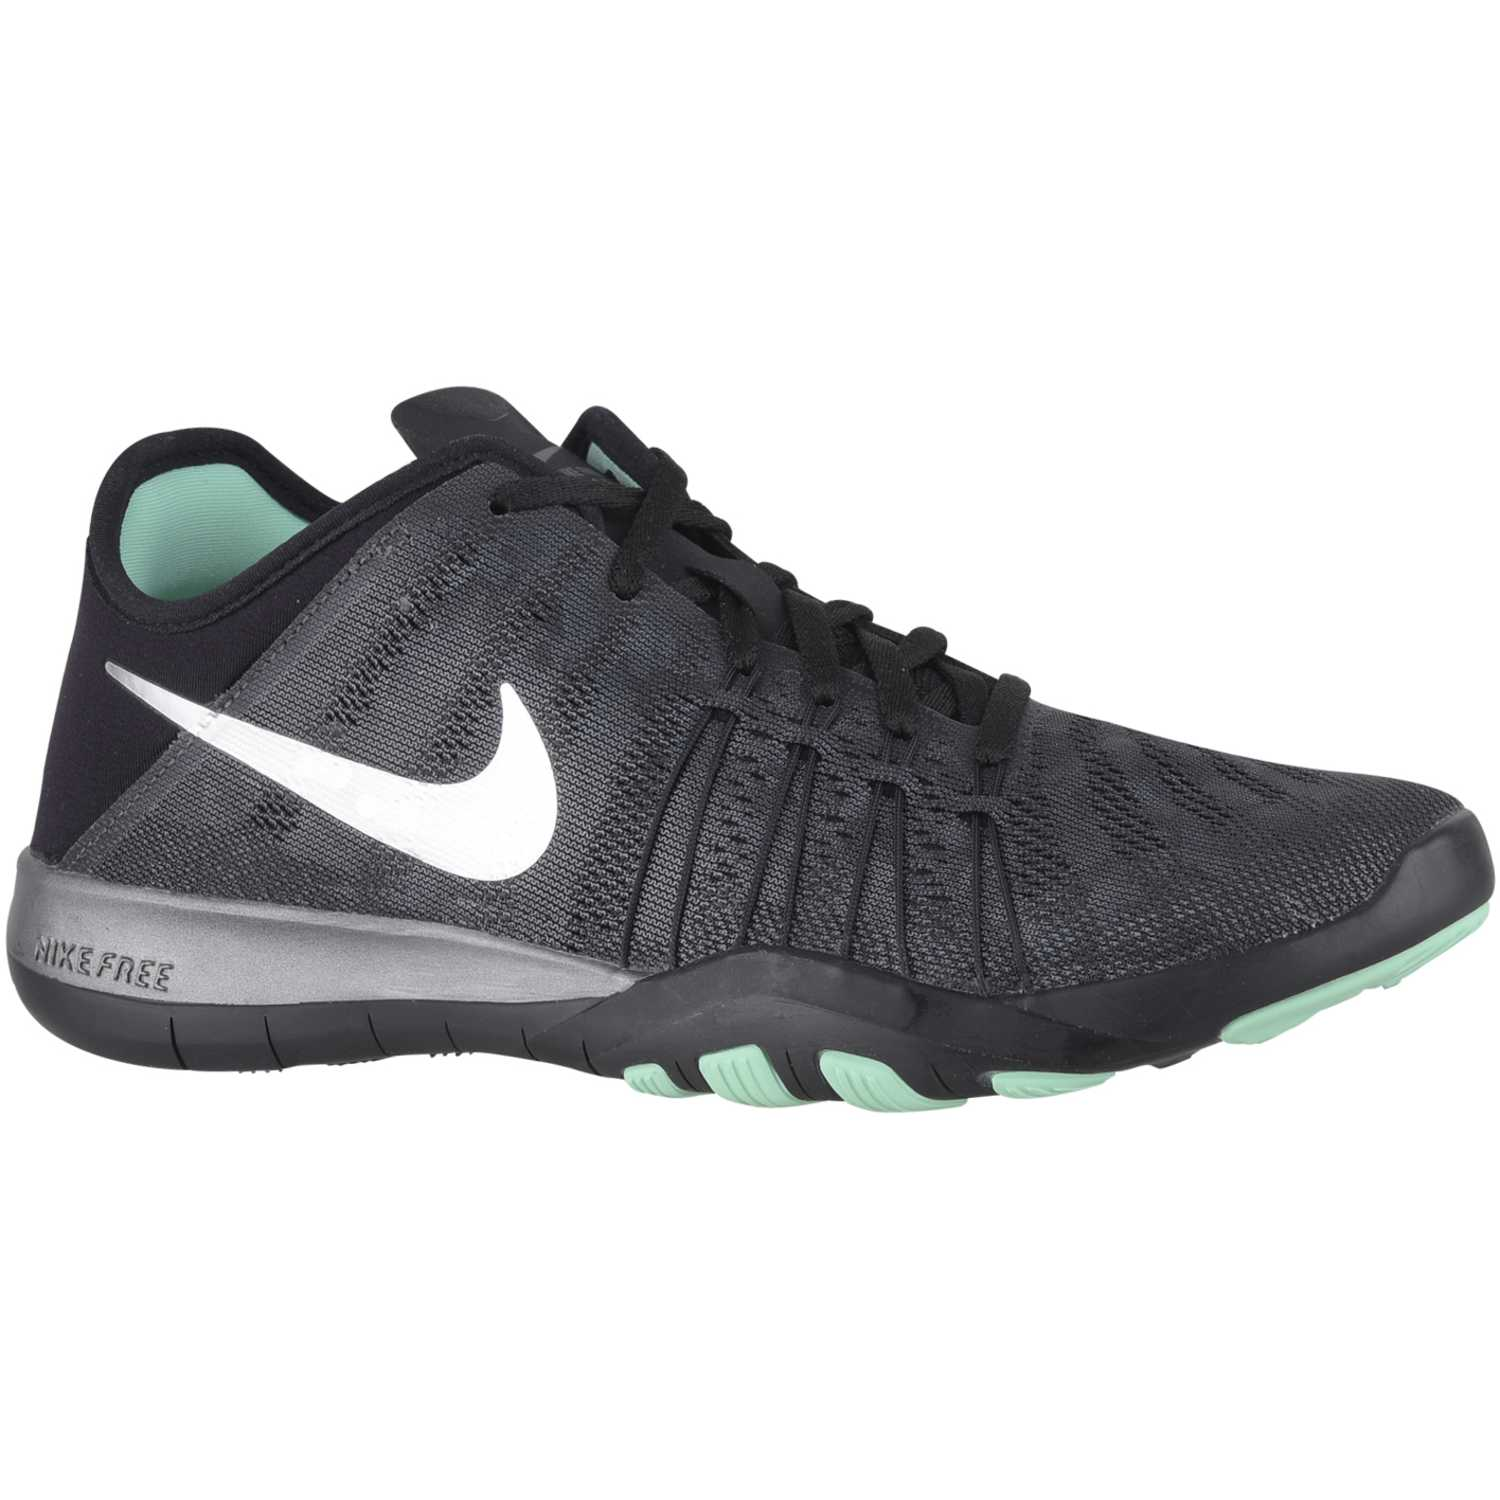 Nike wmns free tr 6 mtlc Gris oscuro Mujeres